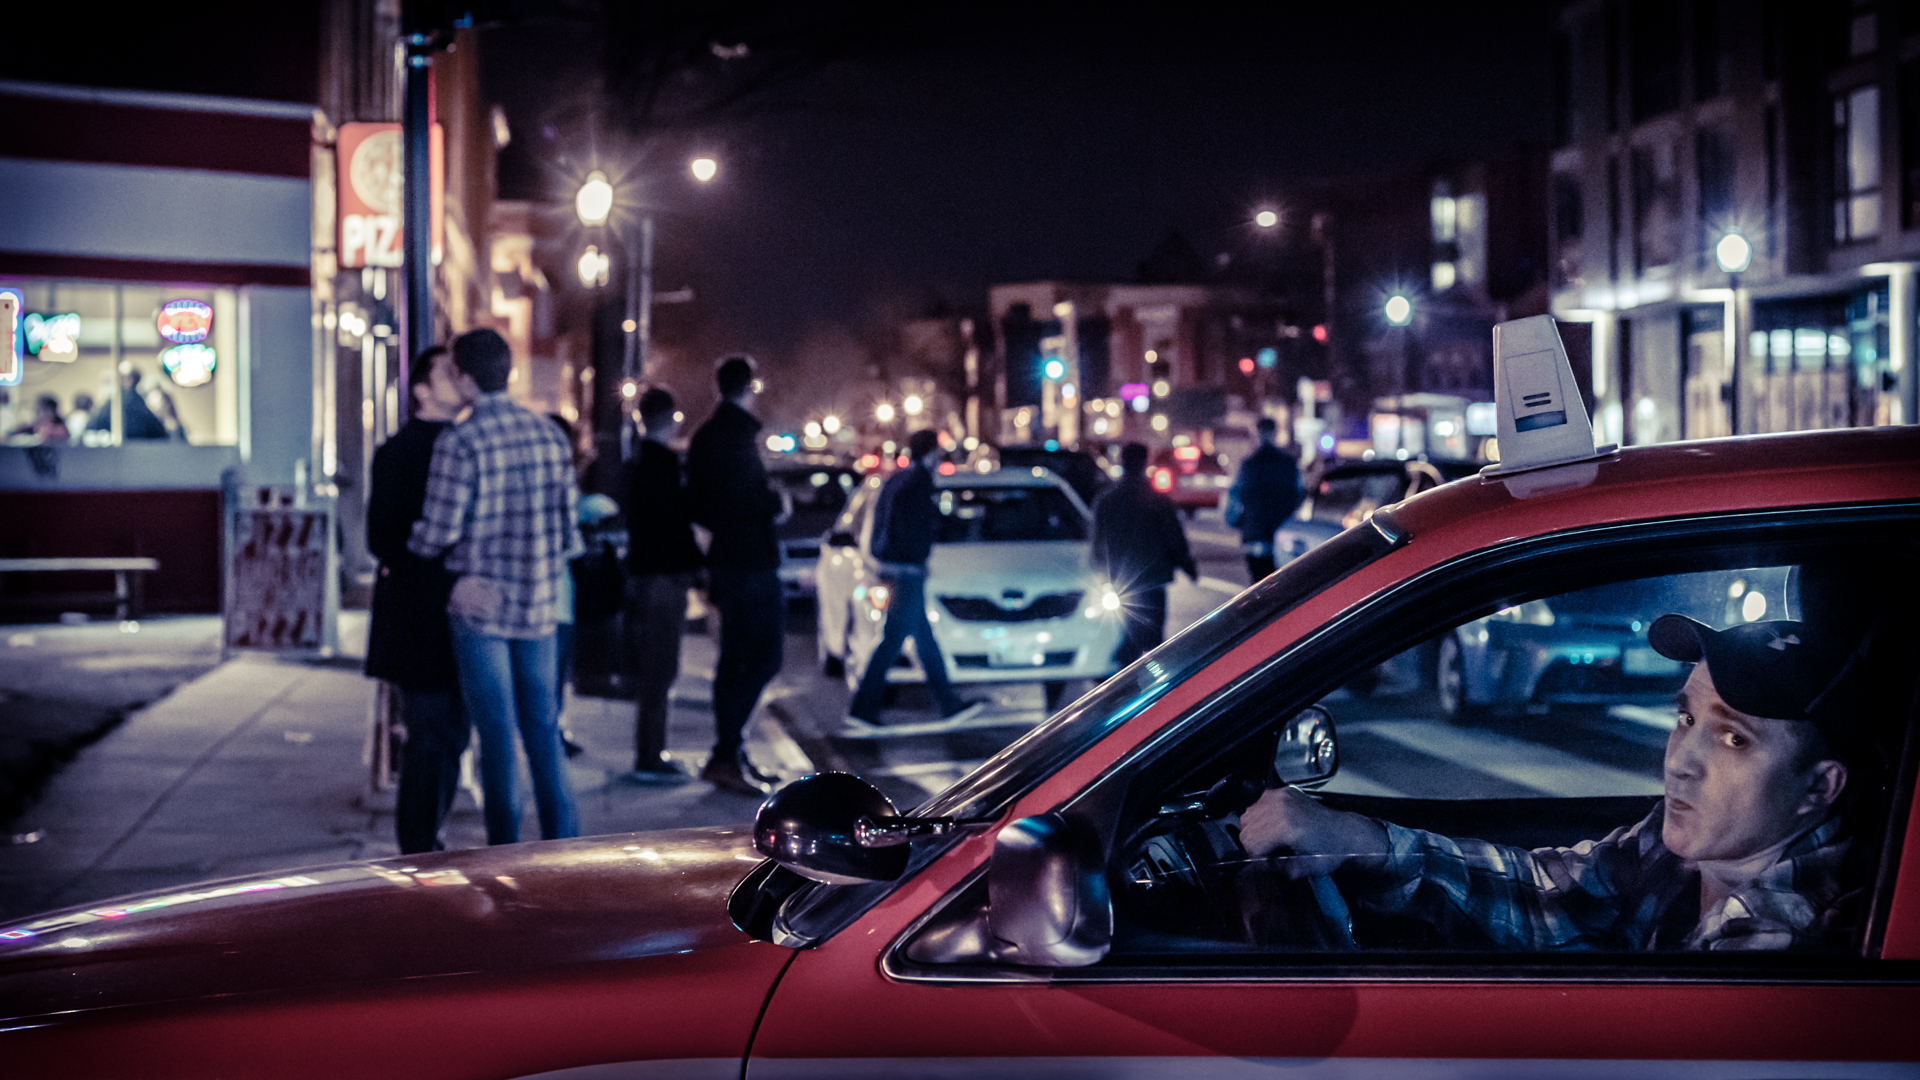 Late night pizza, dude-love, and taxi drivers |  Bang Photography